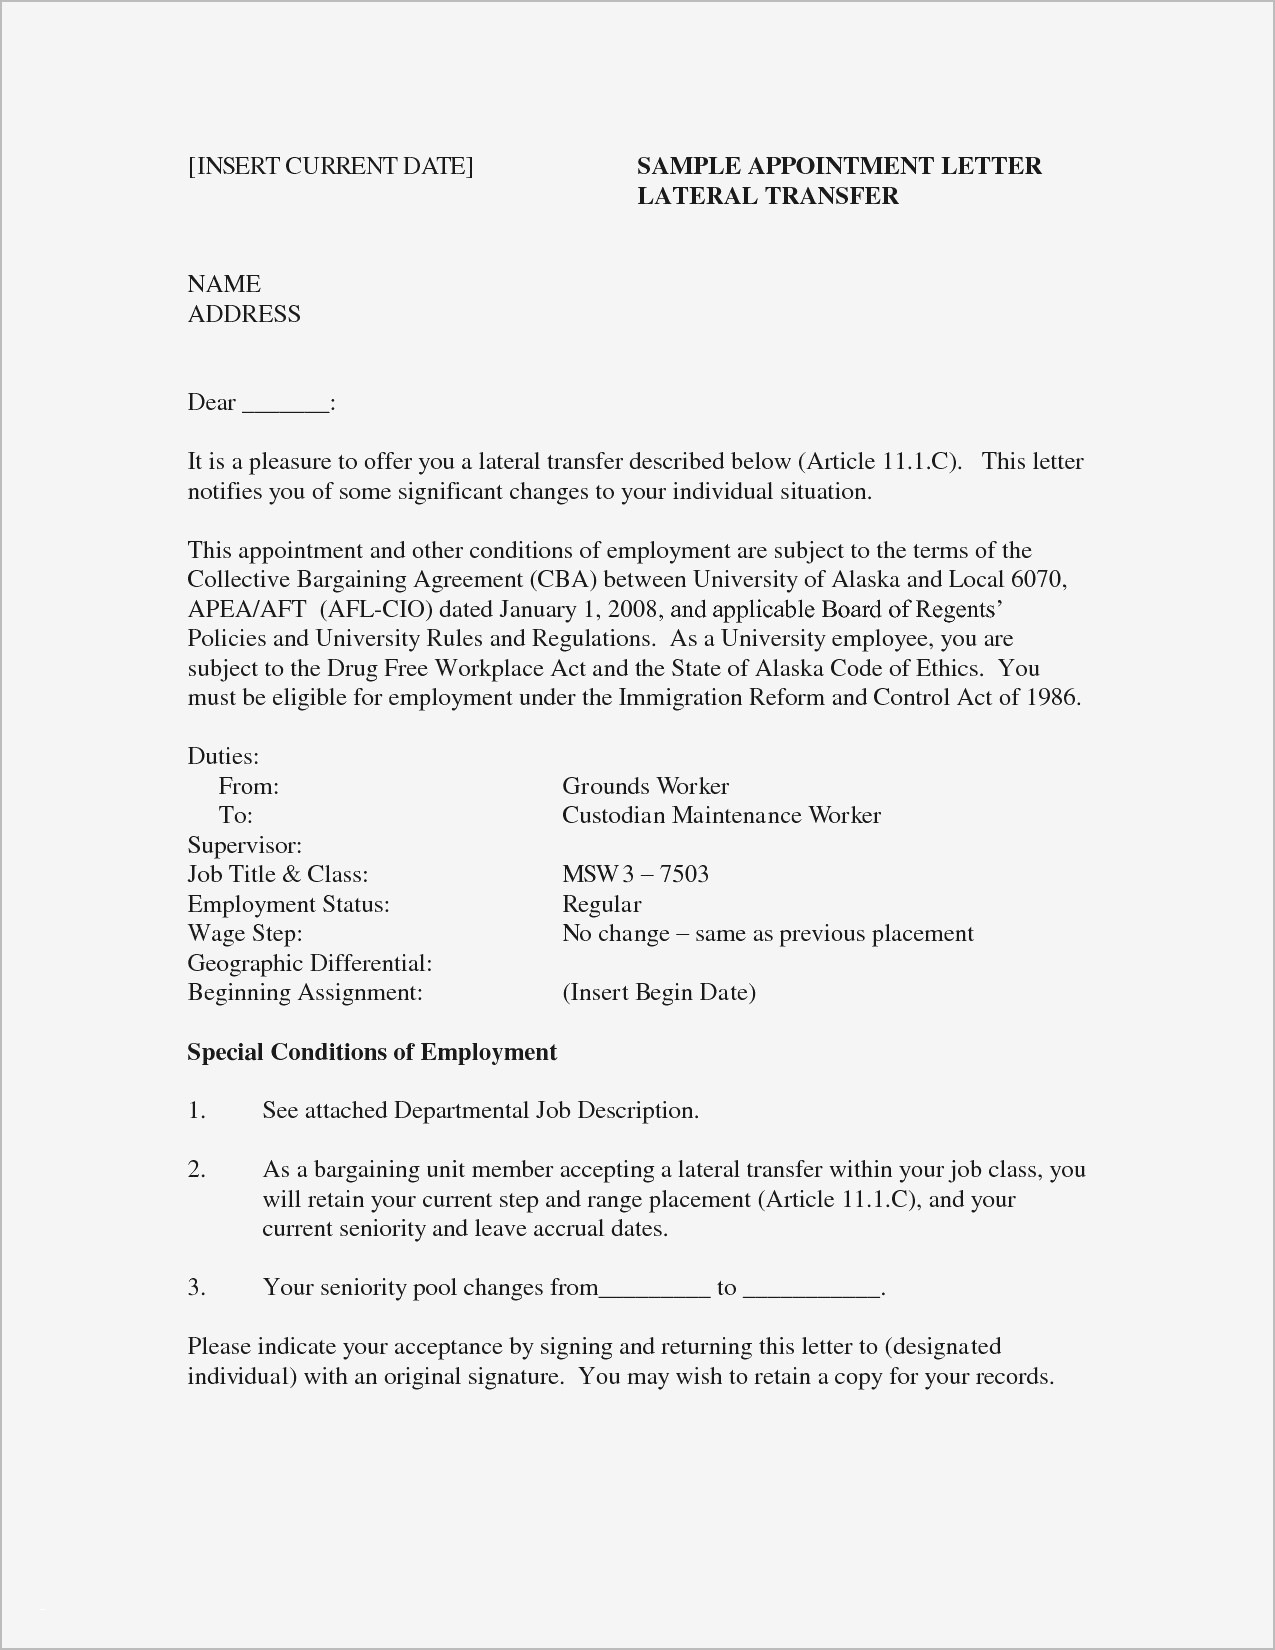 Free Reference Letter Template for Employment - Unique Job Reference Letter Template